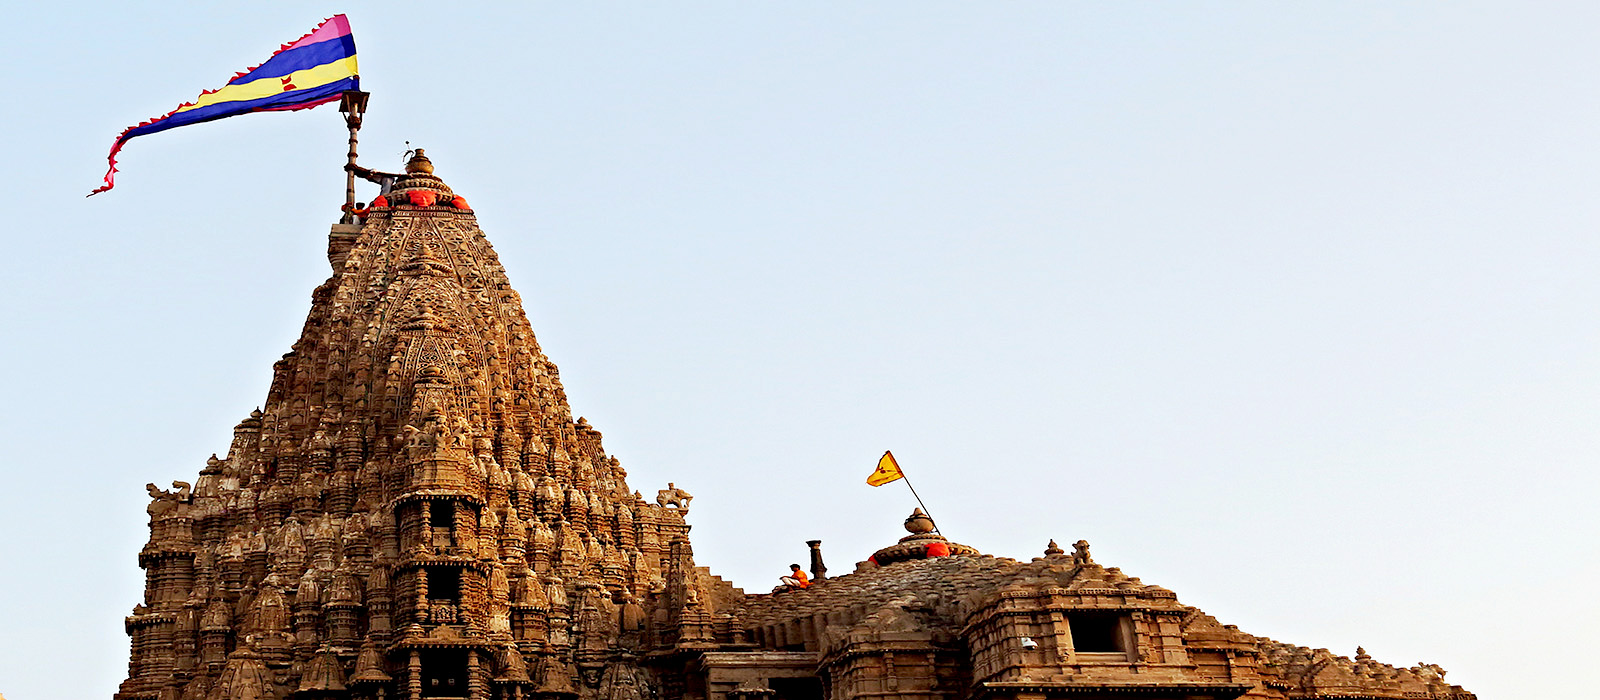 Dwarkadhish Temple